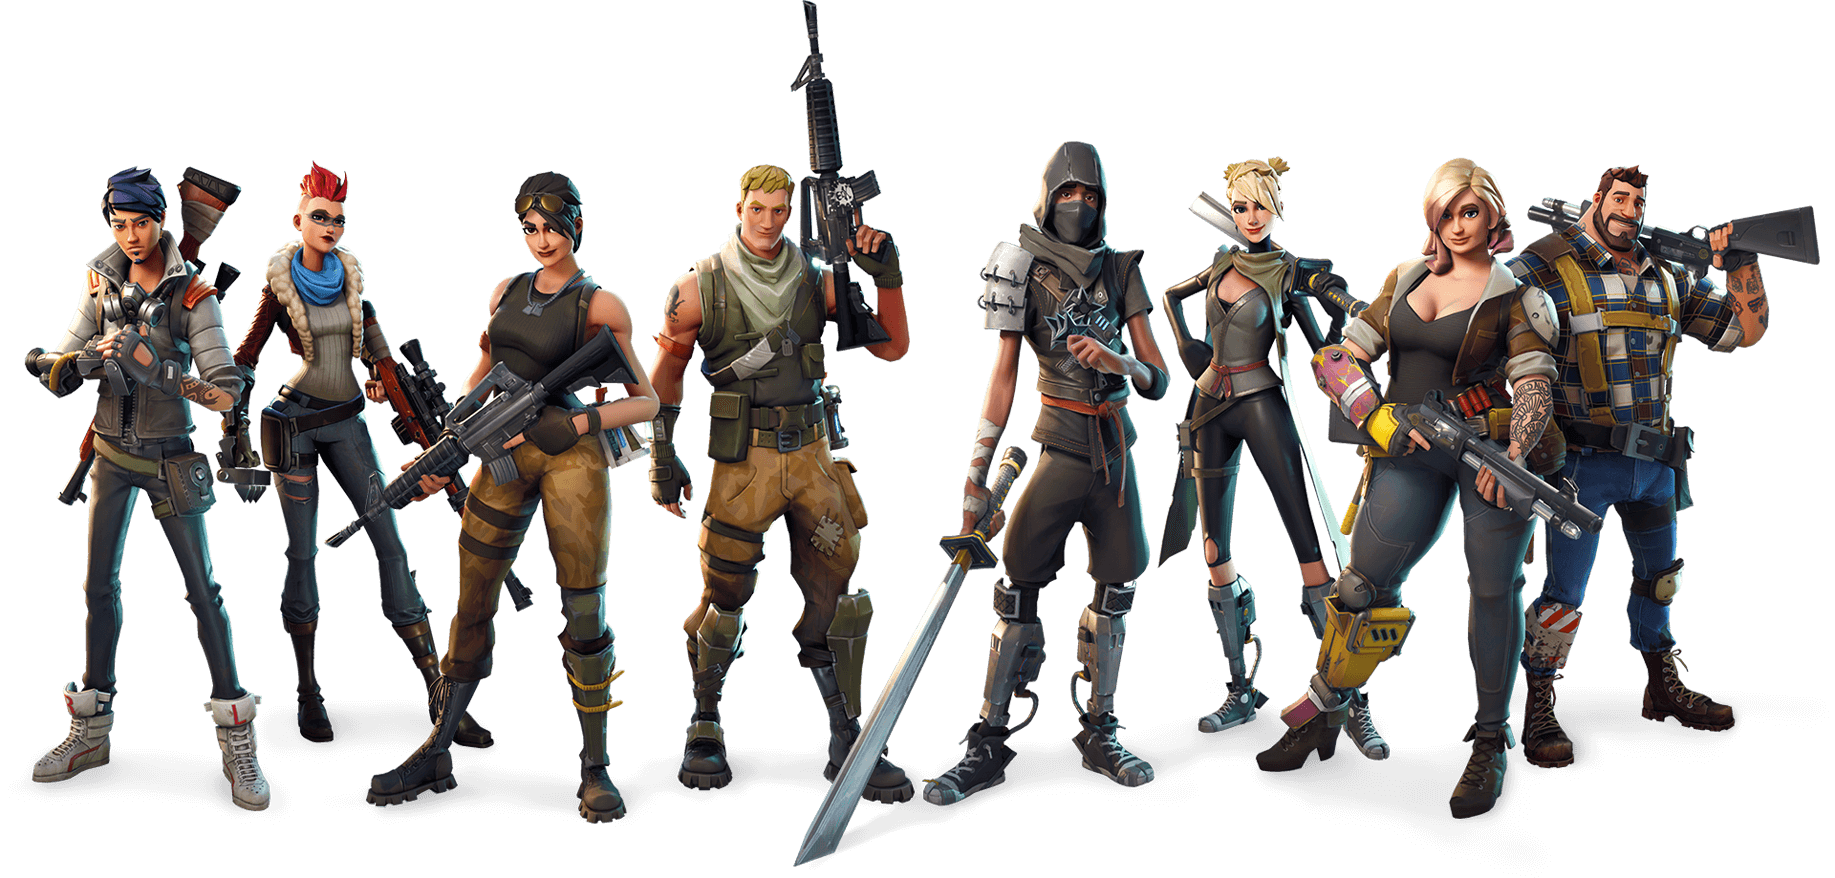 Class clipart transparent. Fortnite characters png image